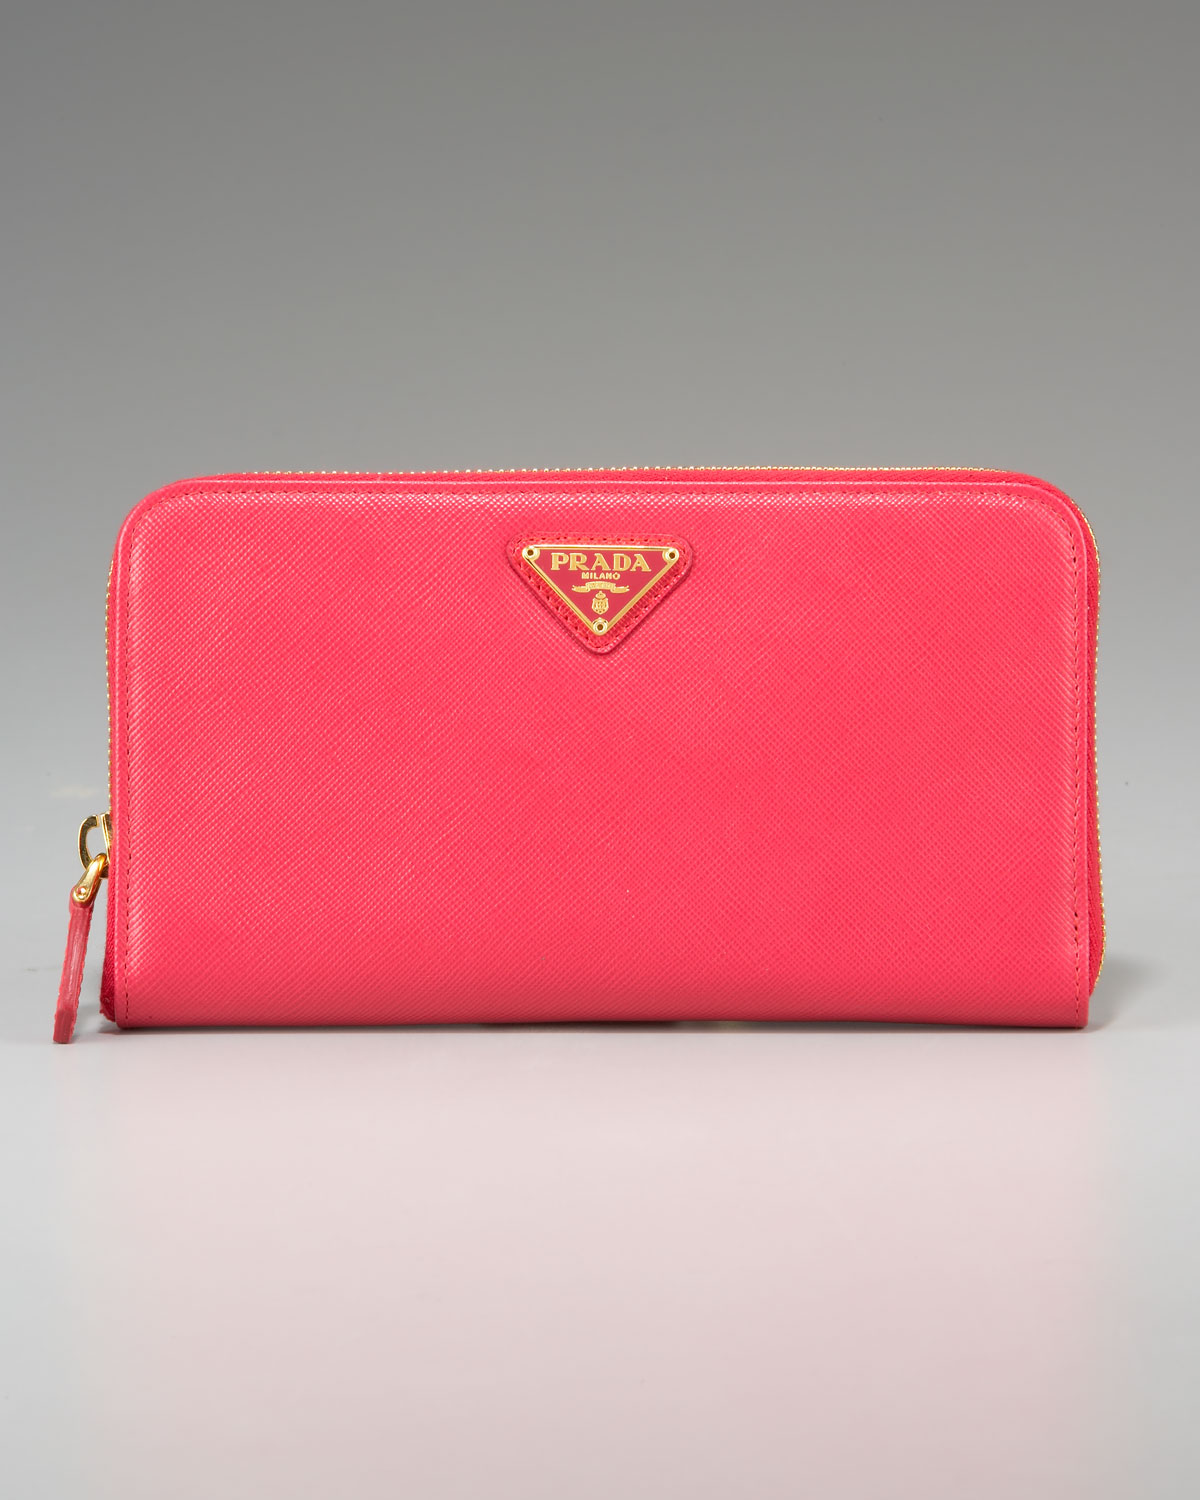 0025748cf984 93eac 224fa; new zealand lyst prada saffiano zip around wallet in pink  6a710 5bee0